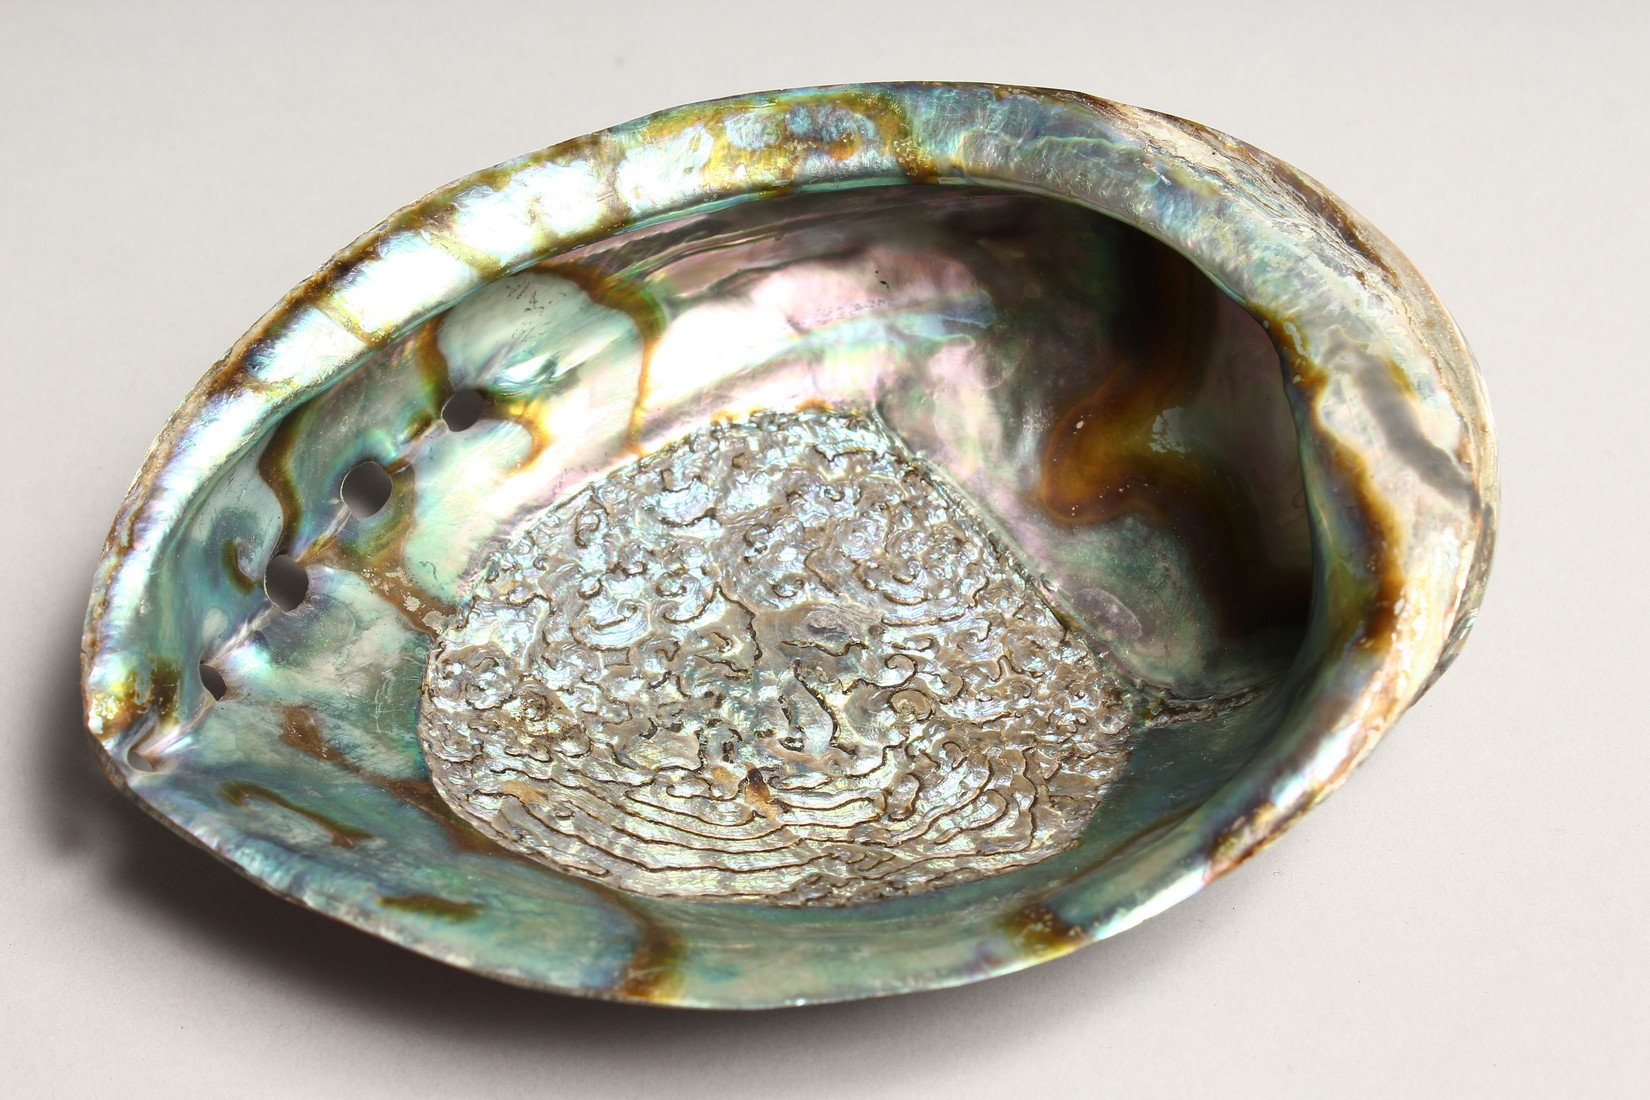 A MOTHER OF PEARL OPEN SHELL 7ins long - Image 4 of 4